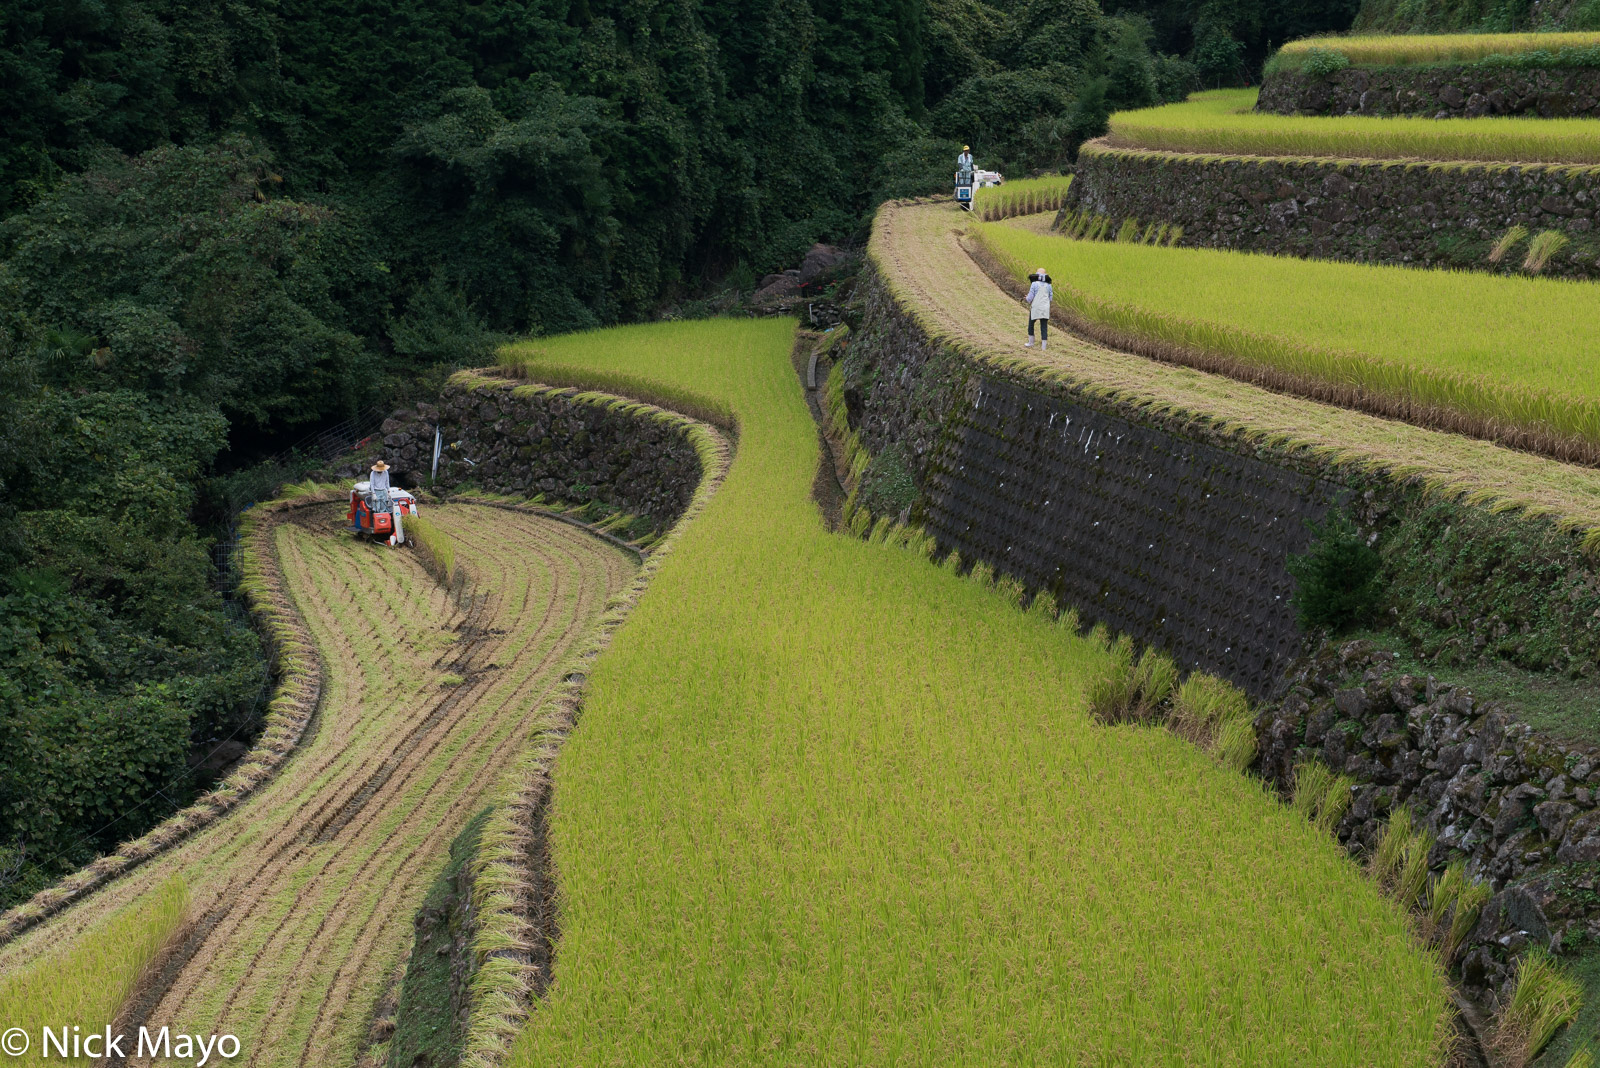 Farmers harvesting paddy rice on the magnificent stone built terraces at Warabino.